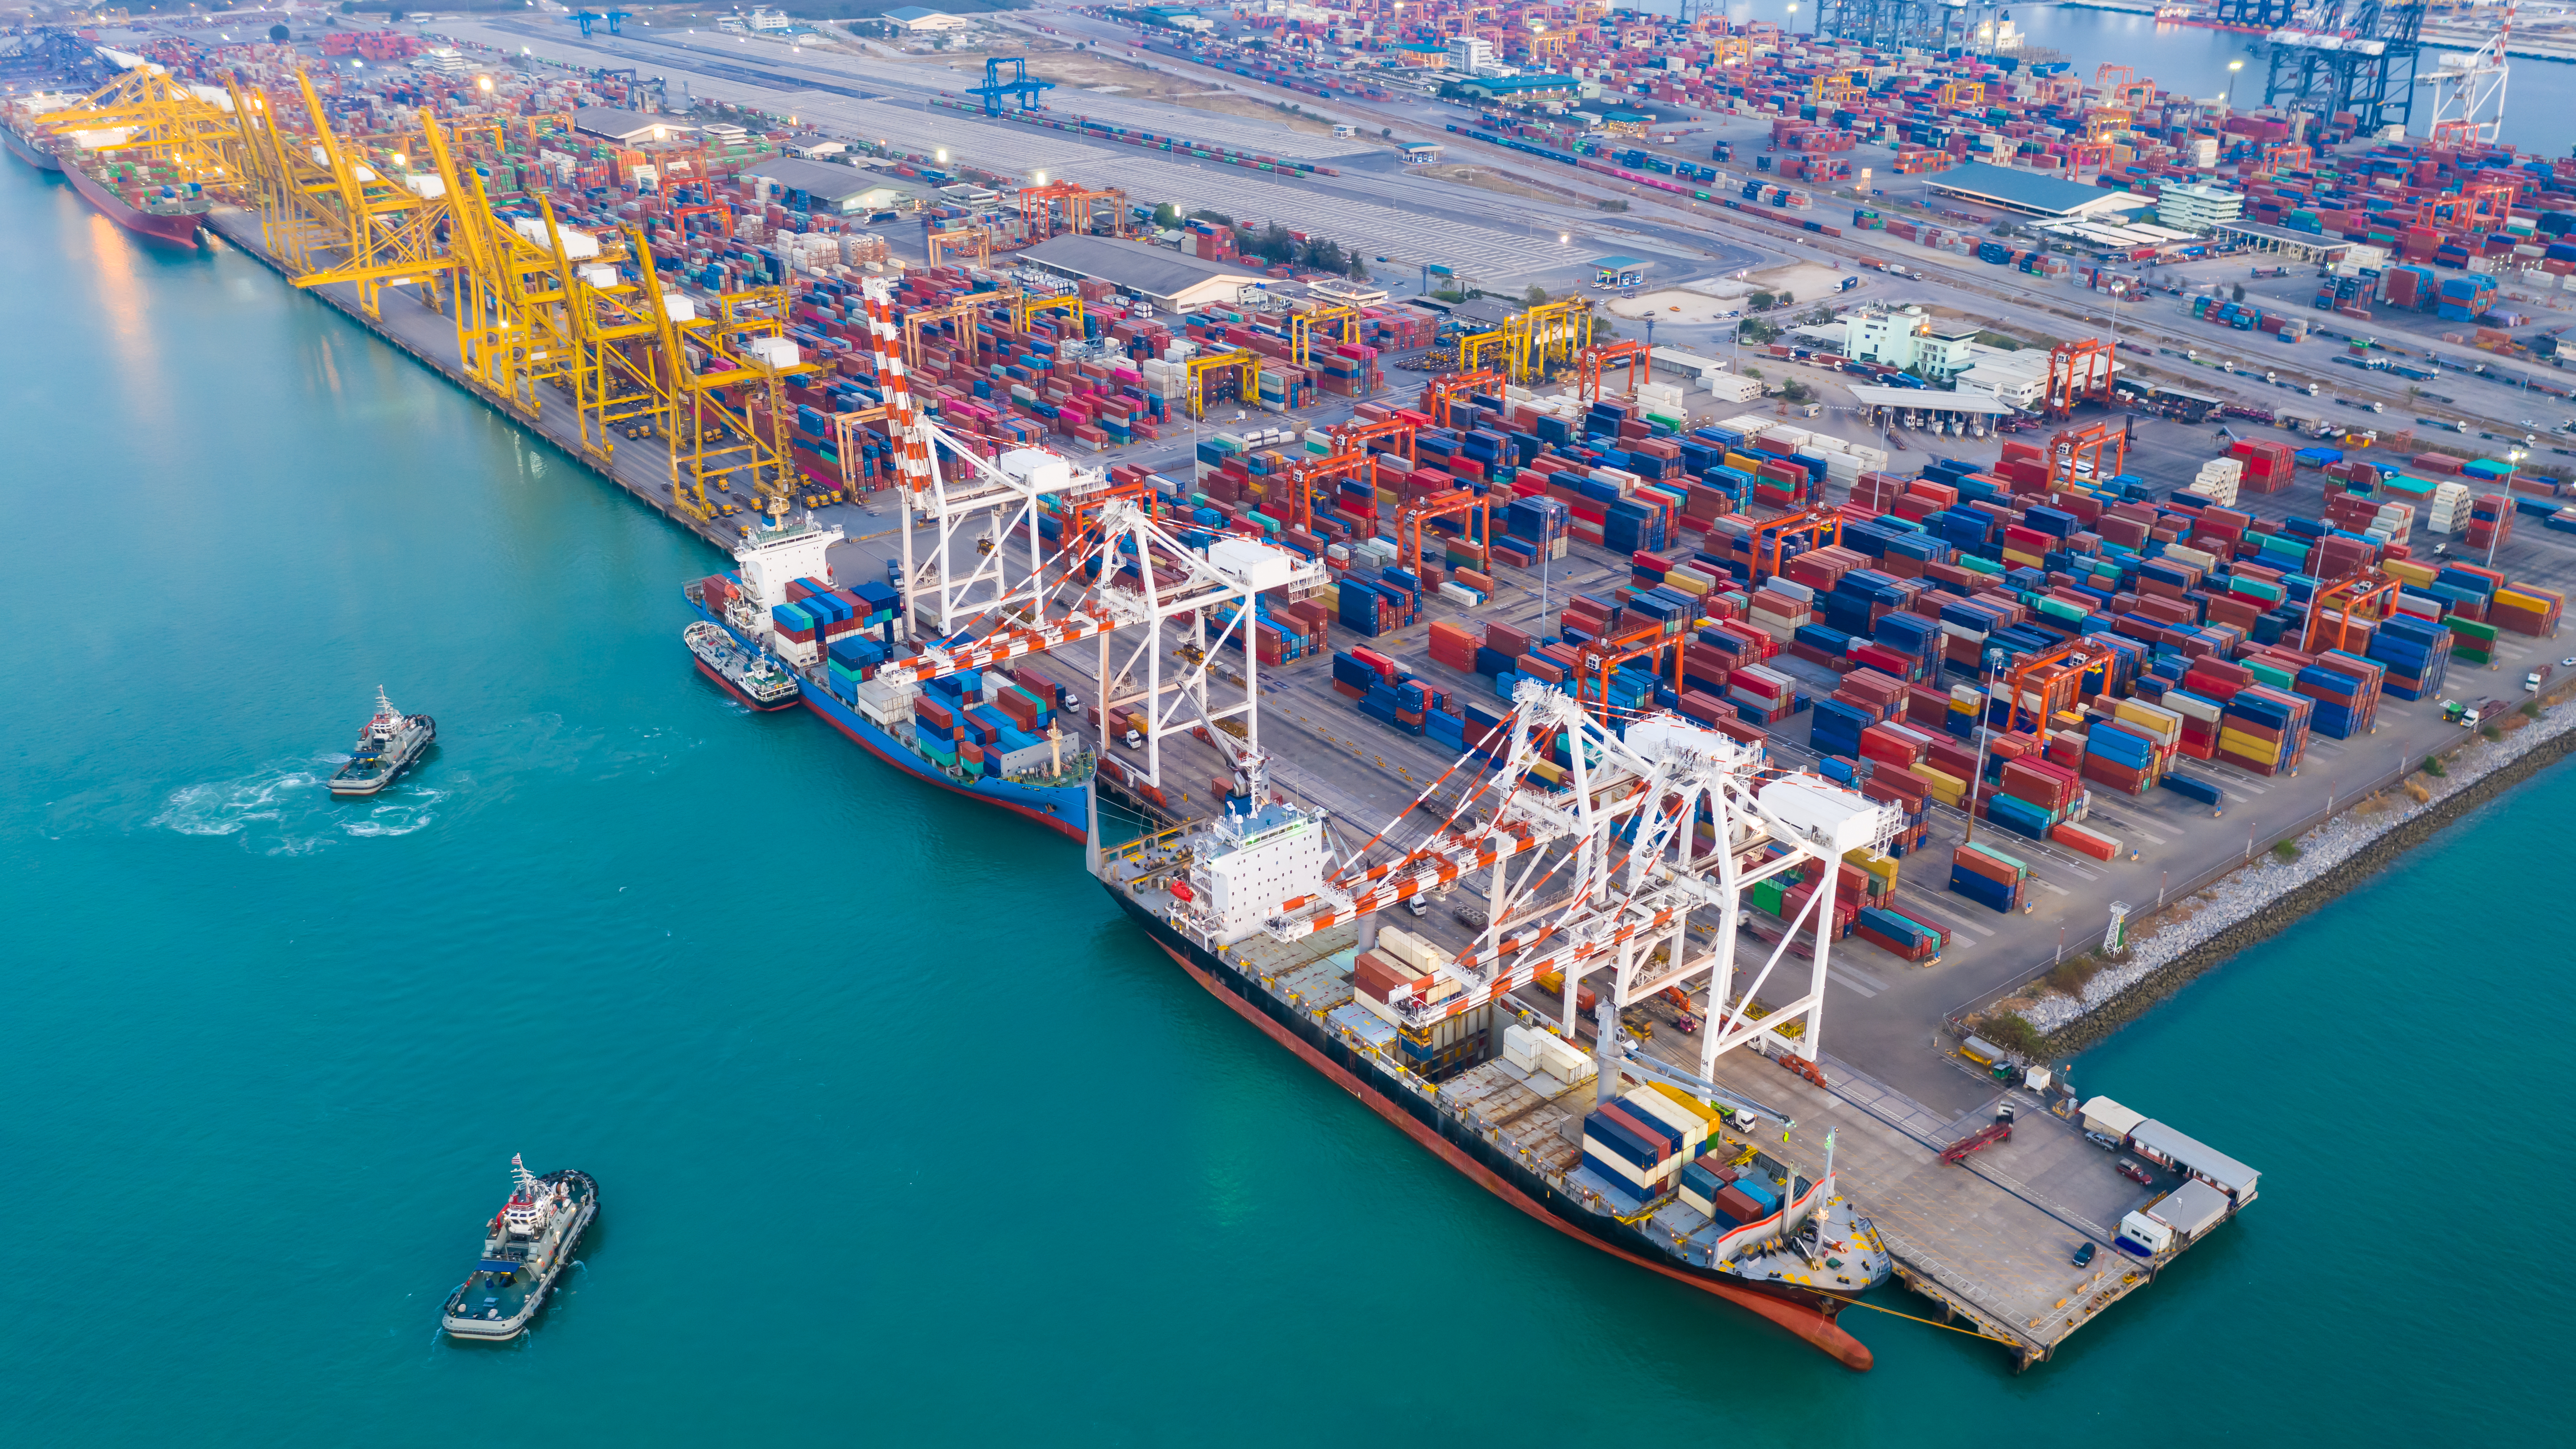 transport-dock-container-warehouse-shipping-loading-unloading-cargo-containers